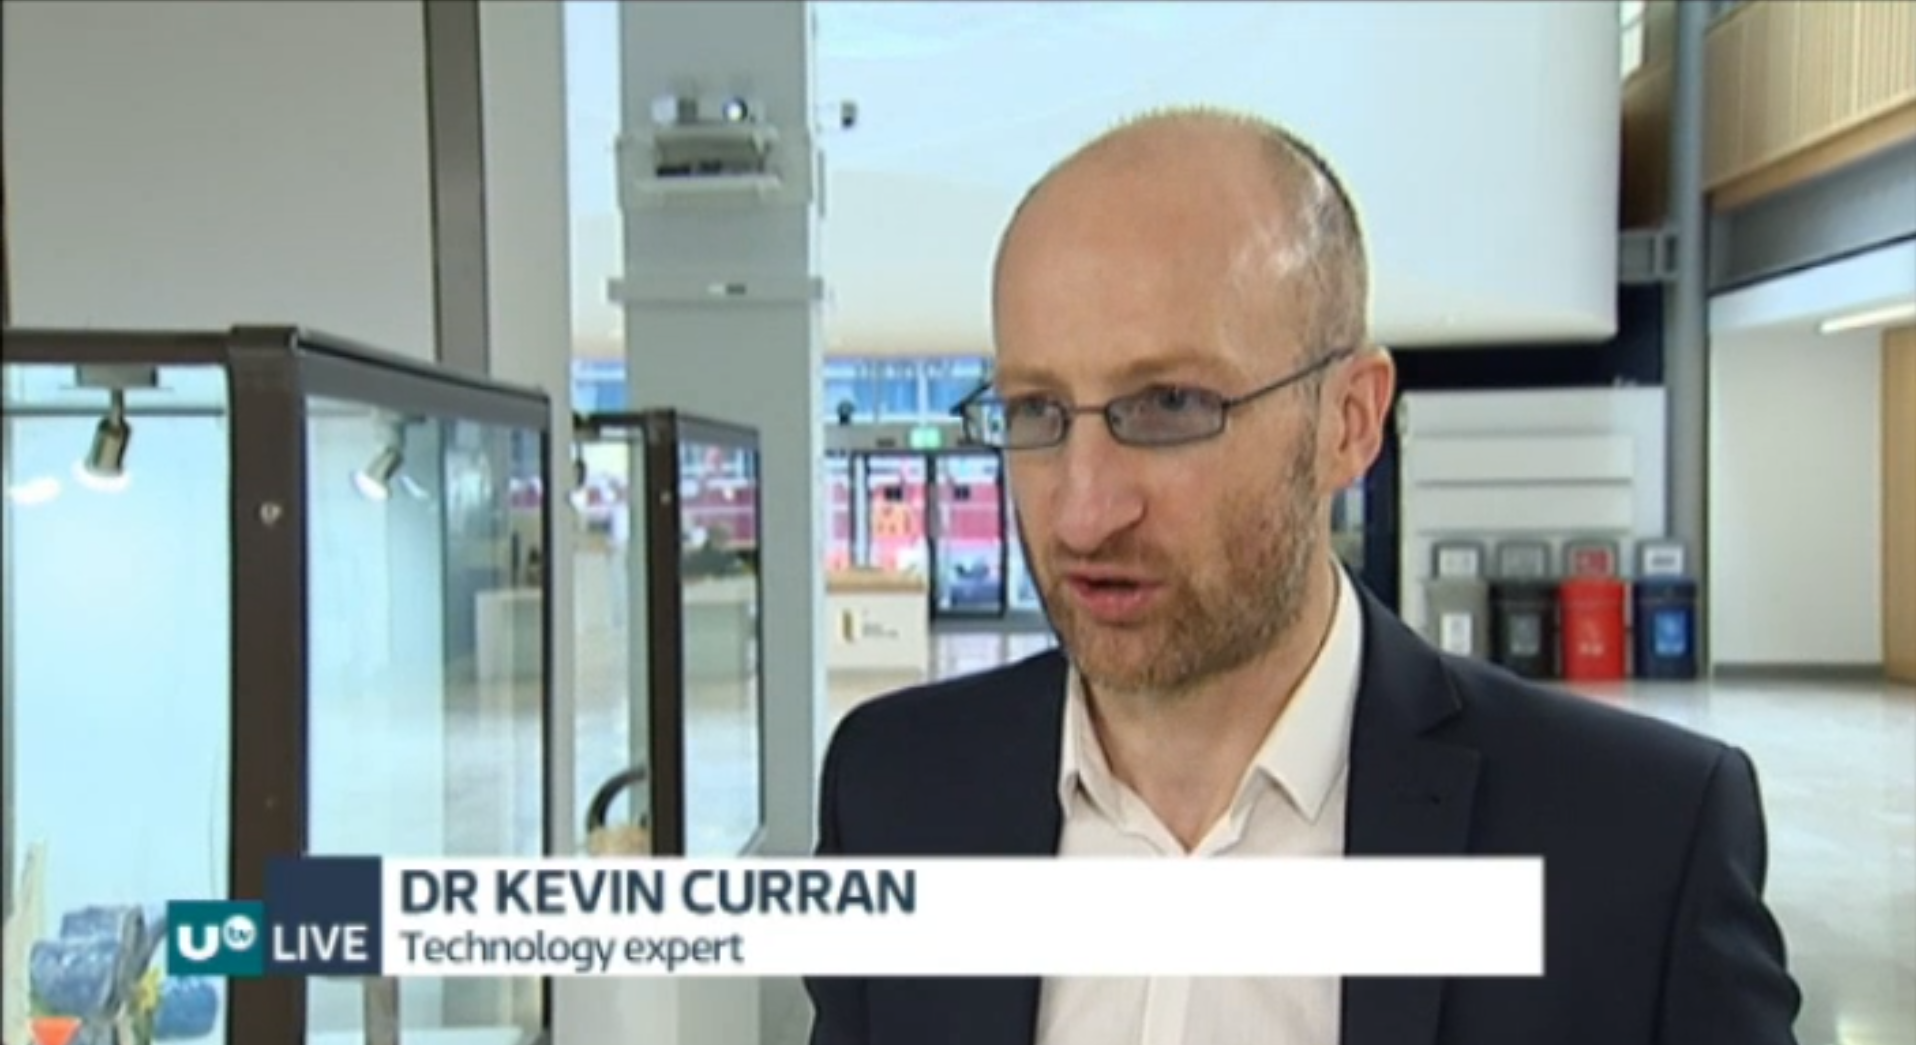 Professor Kevin Curran, Ulster University interview on UTV Live News about the complexities of technology in a frictionless border as a result of Brexit.